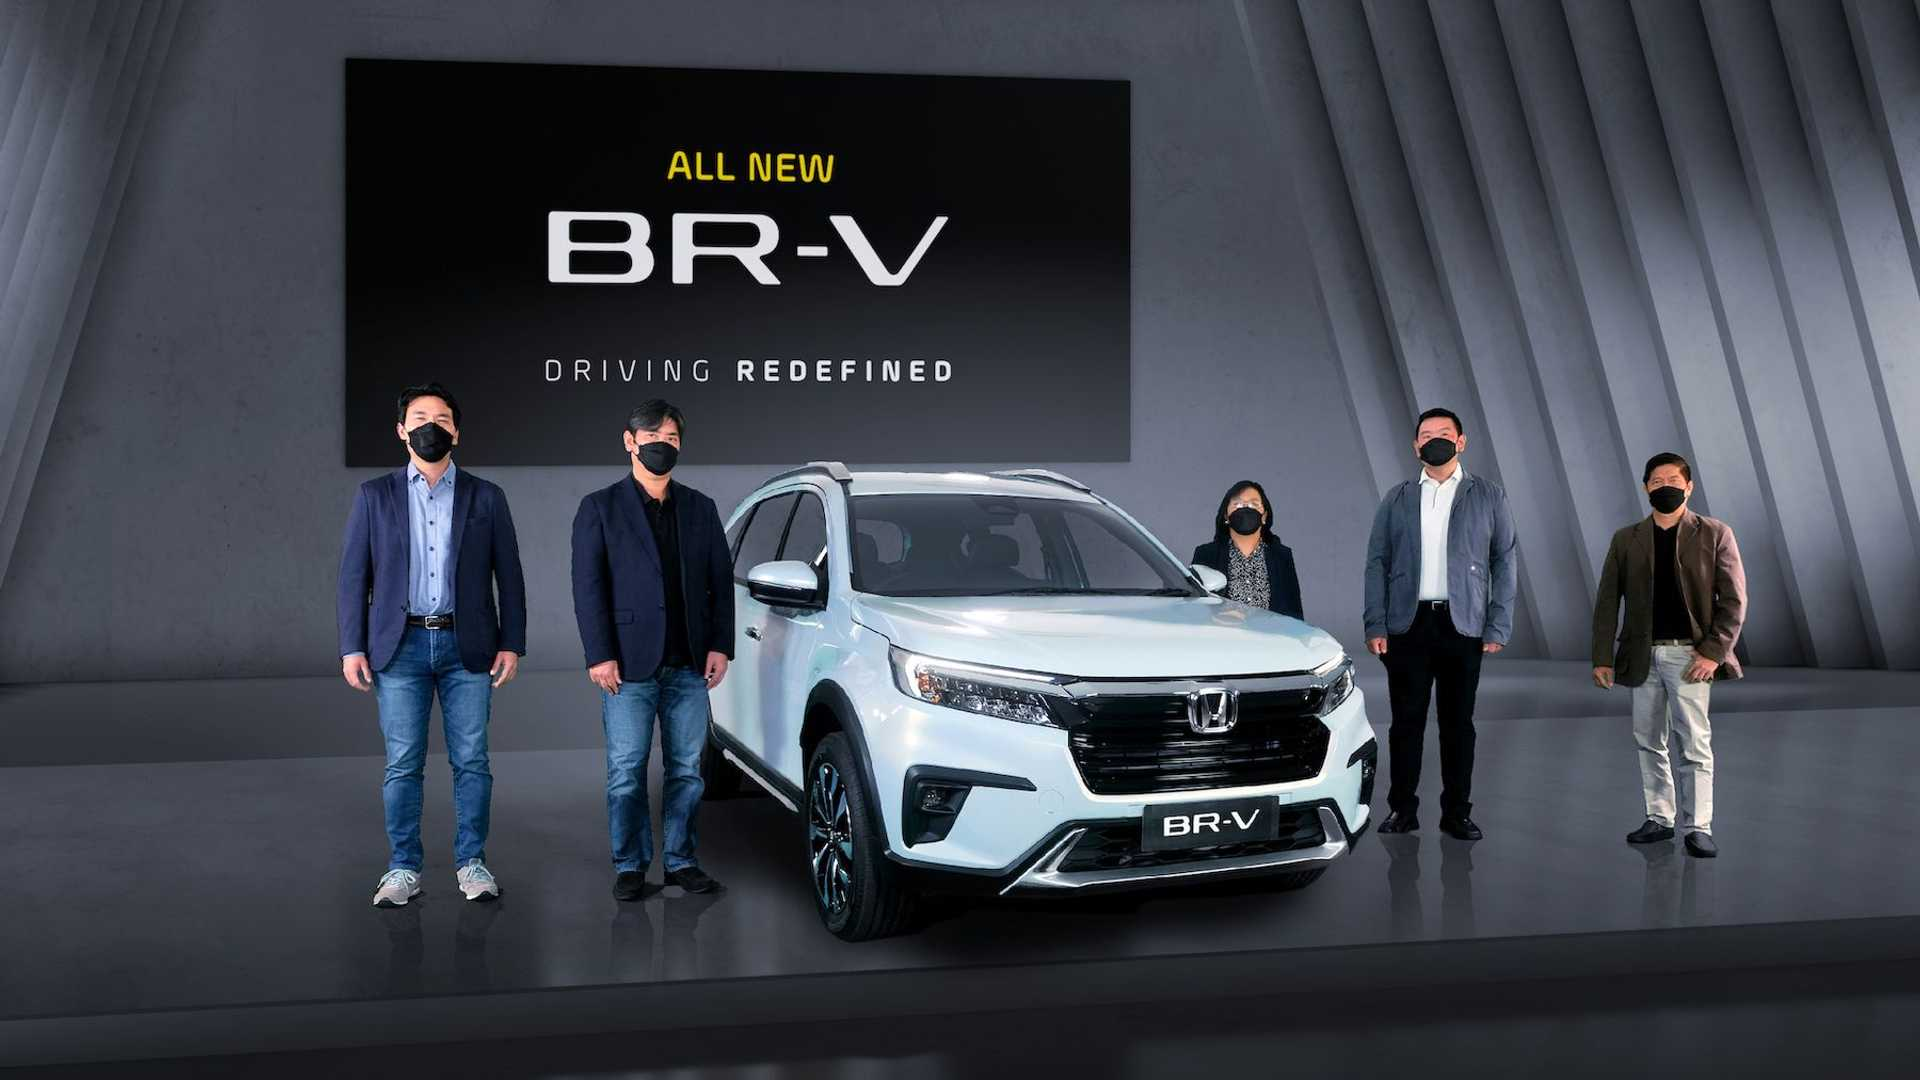 The Honda BR-V, which debuted six years ago, has now entered its second generation. The presentation event took place in Indonesia, one of the key markets for the crossover SUV.